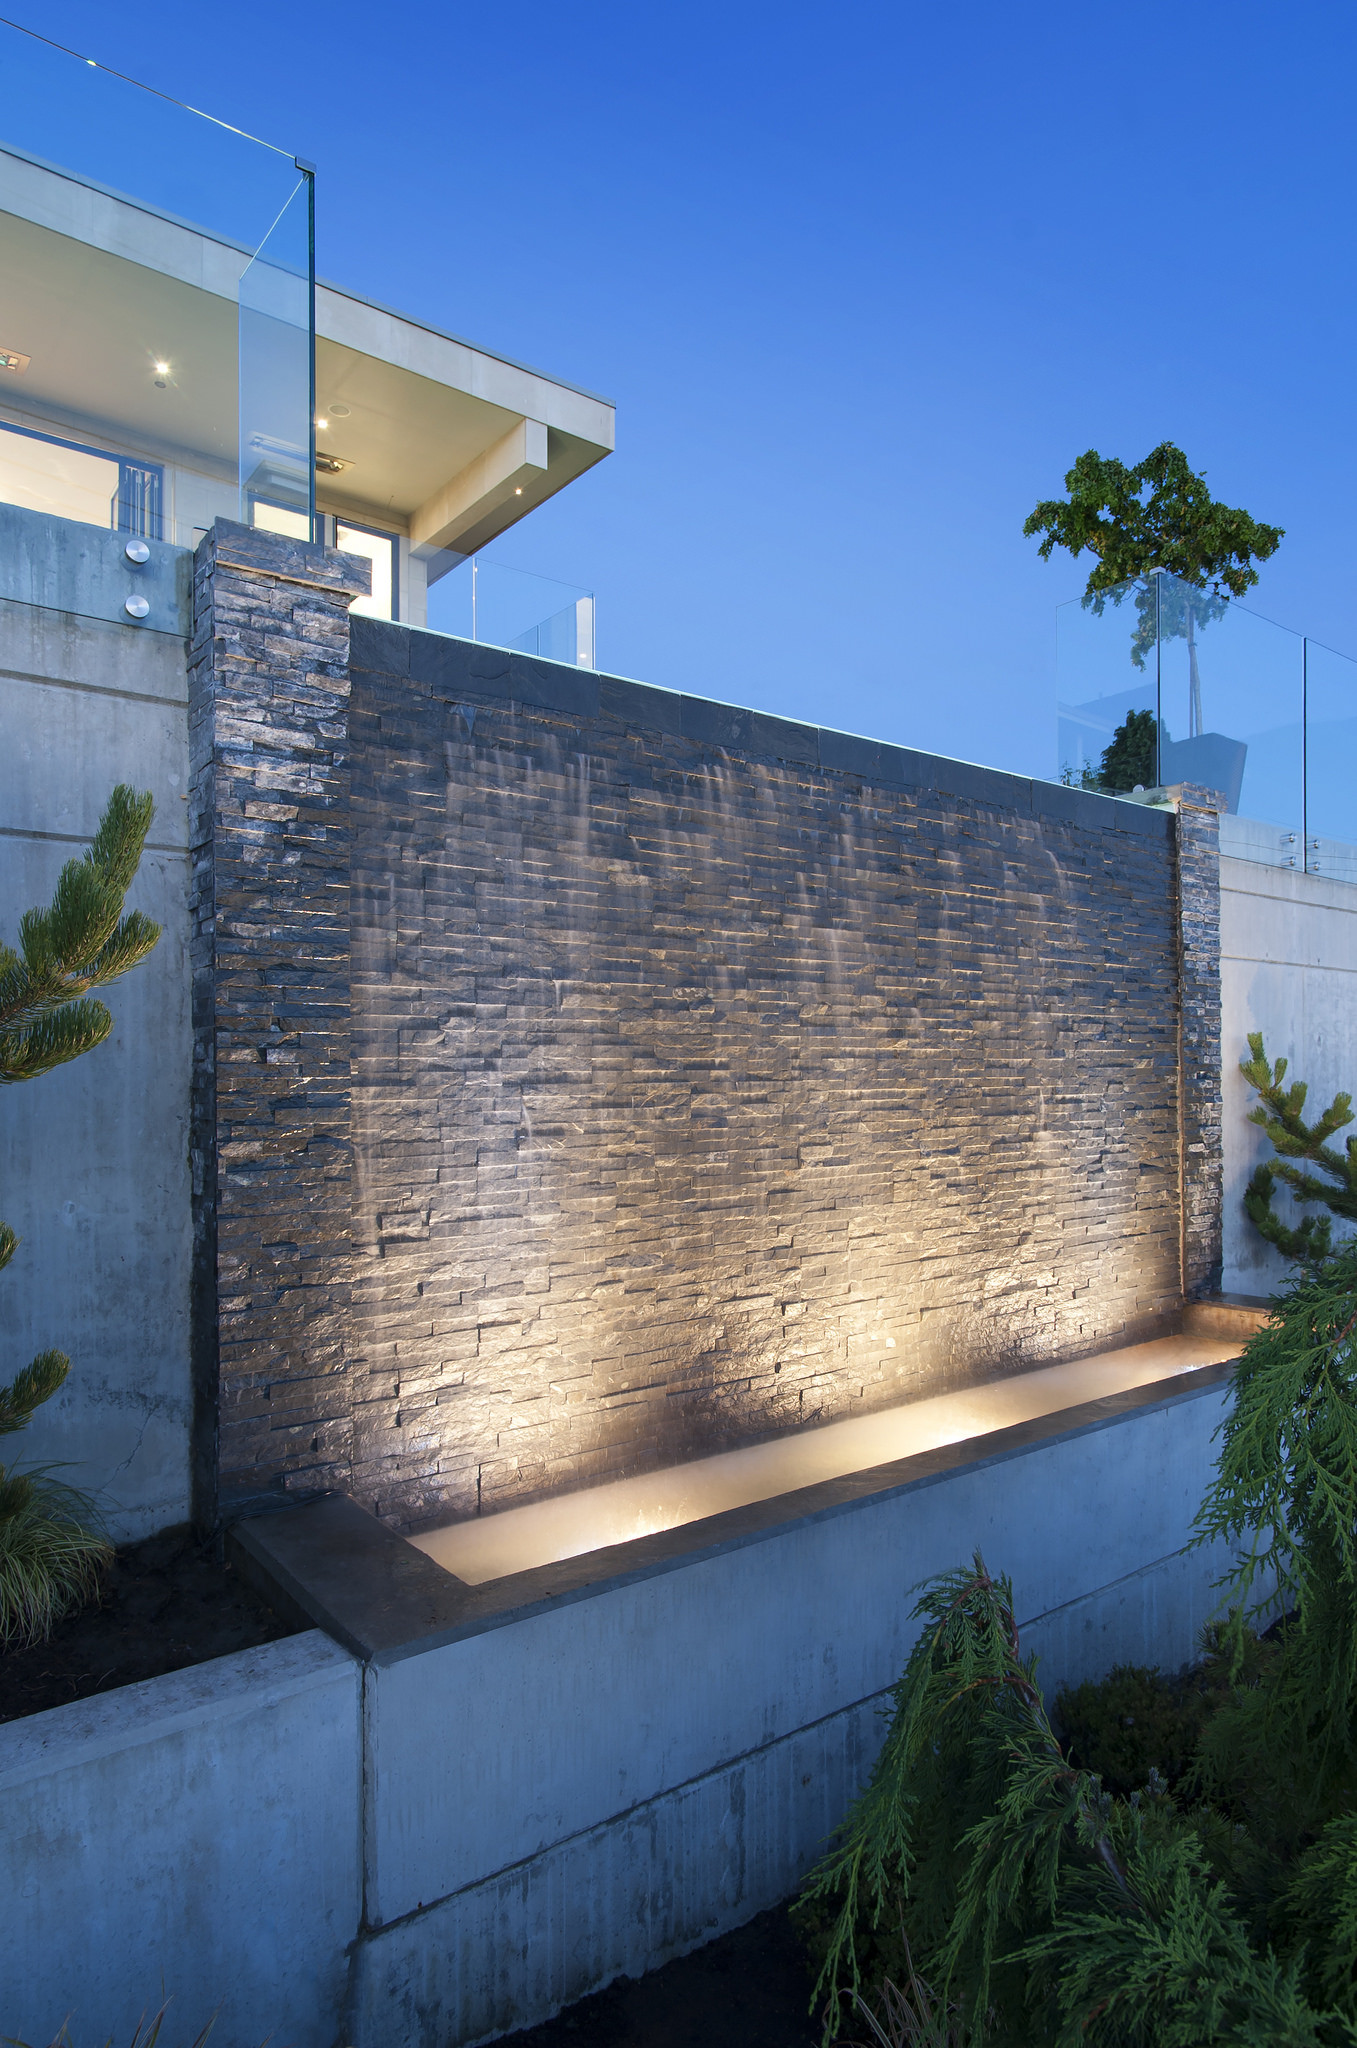 Best ideas about DIY Water Wall Kit . Save or Pin Diy Wall Fountain Custom Gl Water Walls Indoor Now.